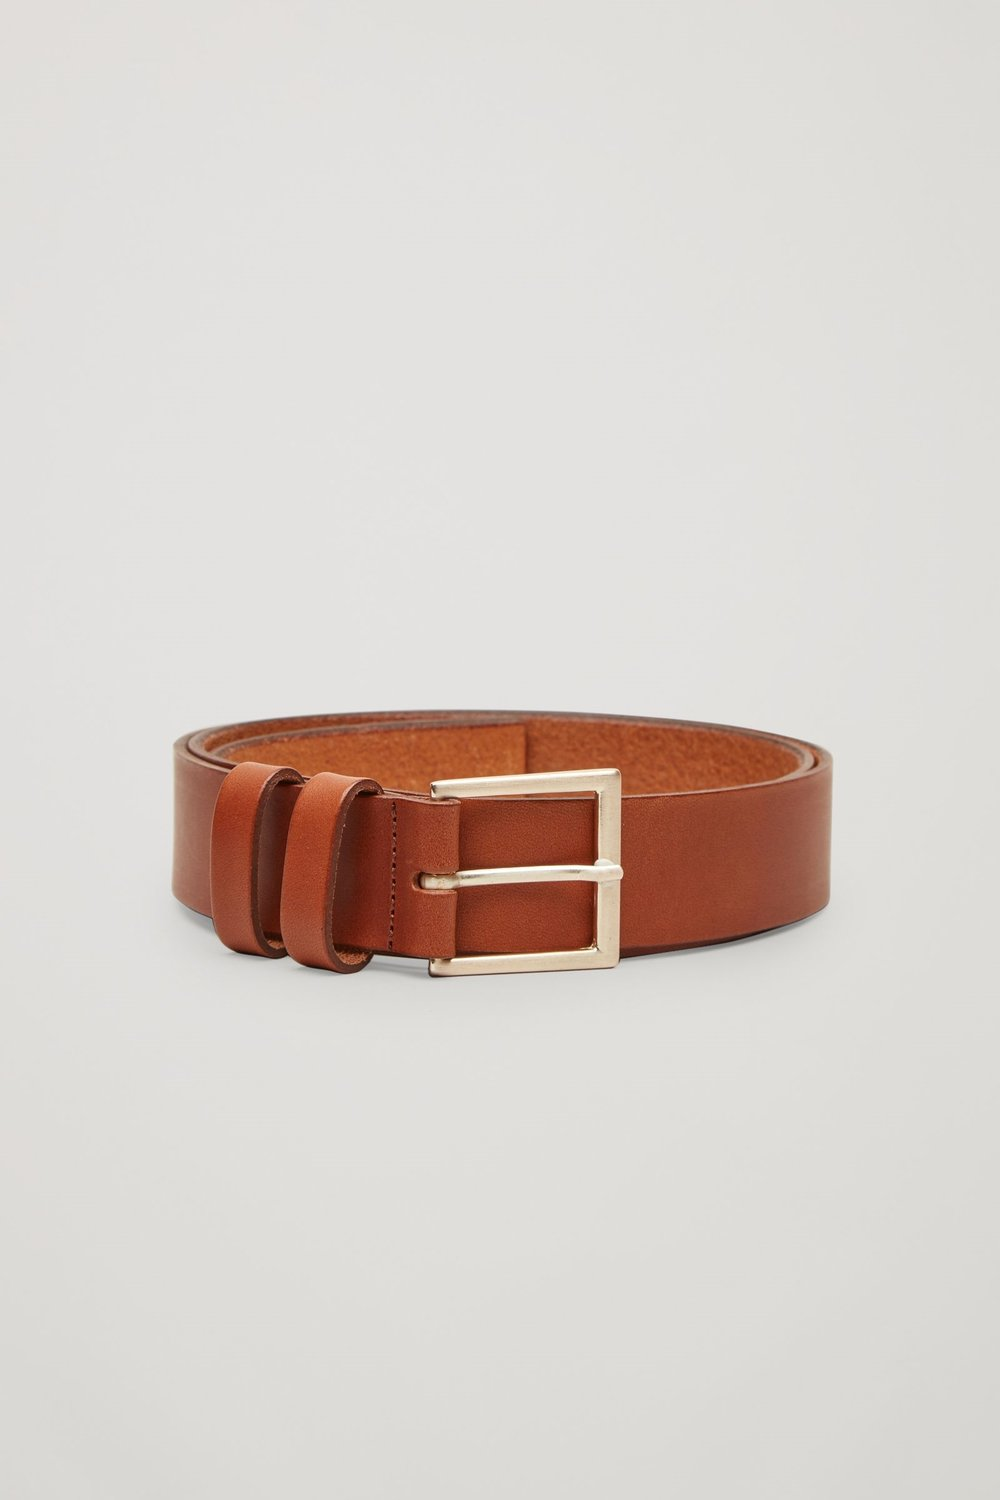 Tan Belt     I spent what seemed like forever trying to find the perfect tan leather belt - until I came across this one! I think the colour, style and the gold buckle are perfect for pairing with any pair of jeans. The good news is its only €29.